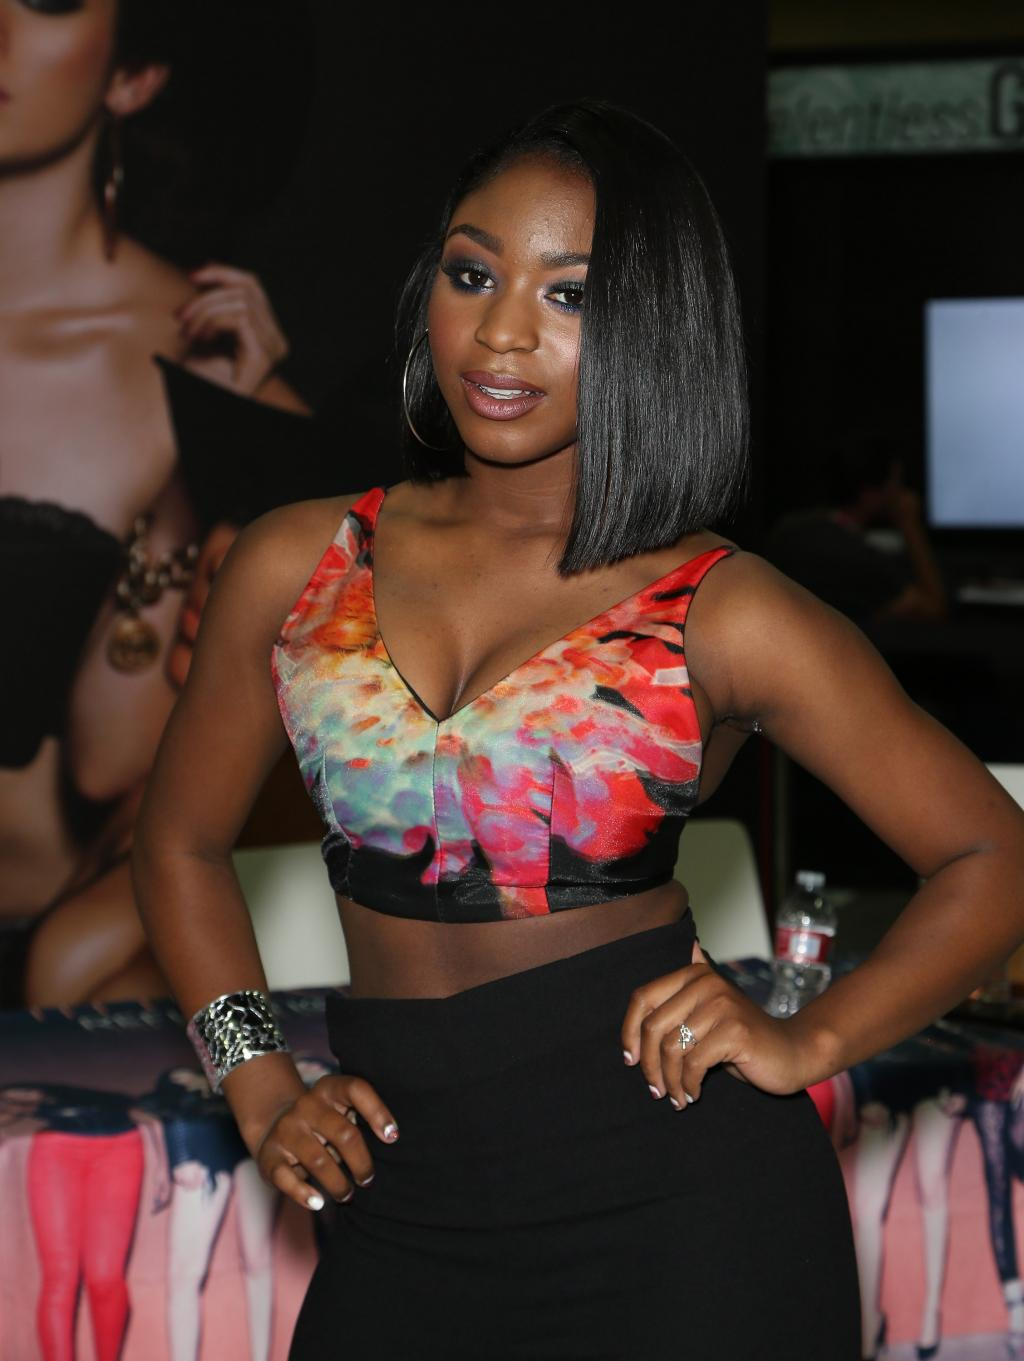 Normani Hamilton: Fifth Harmony Singer Reveals Dancing Is Her Main